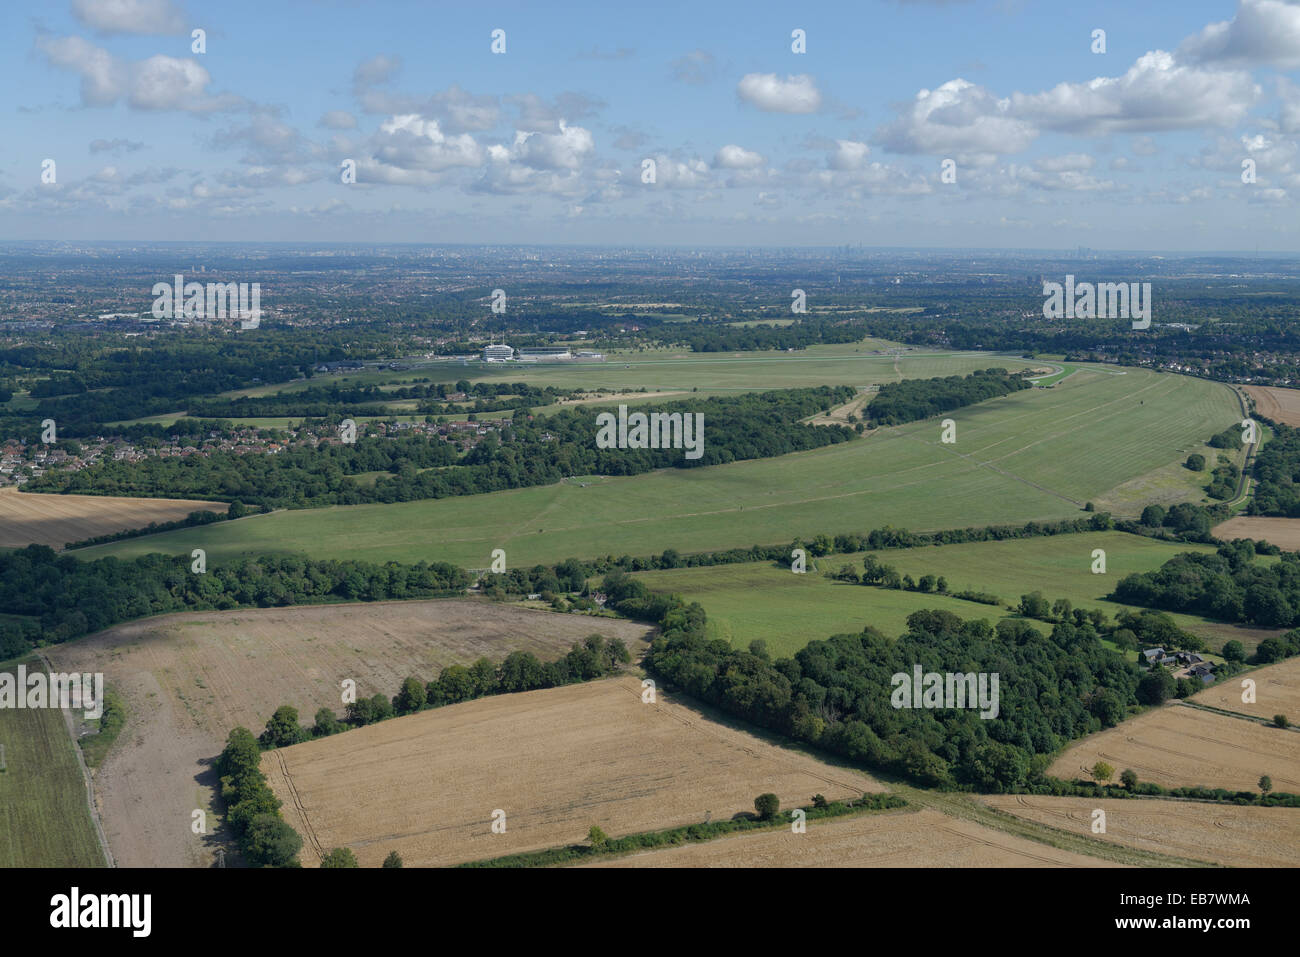 An aerial view of the Epsom Downs with the racecourse visible and the tall buildings of London in the distance Stock Photo